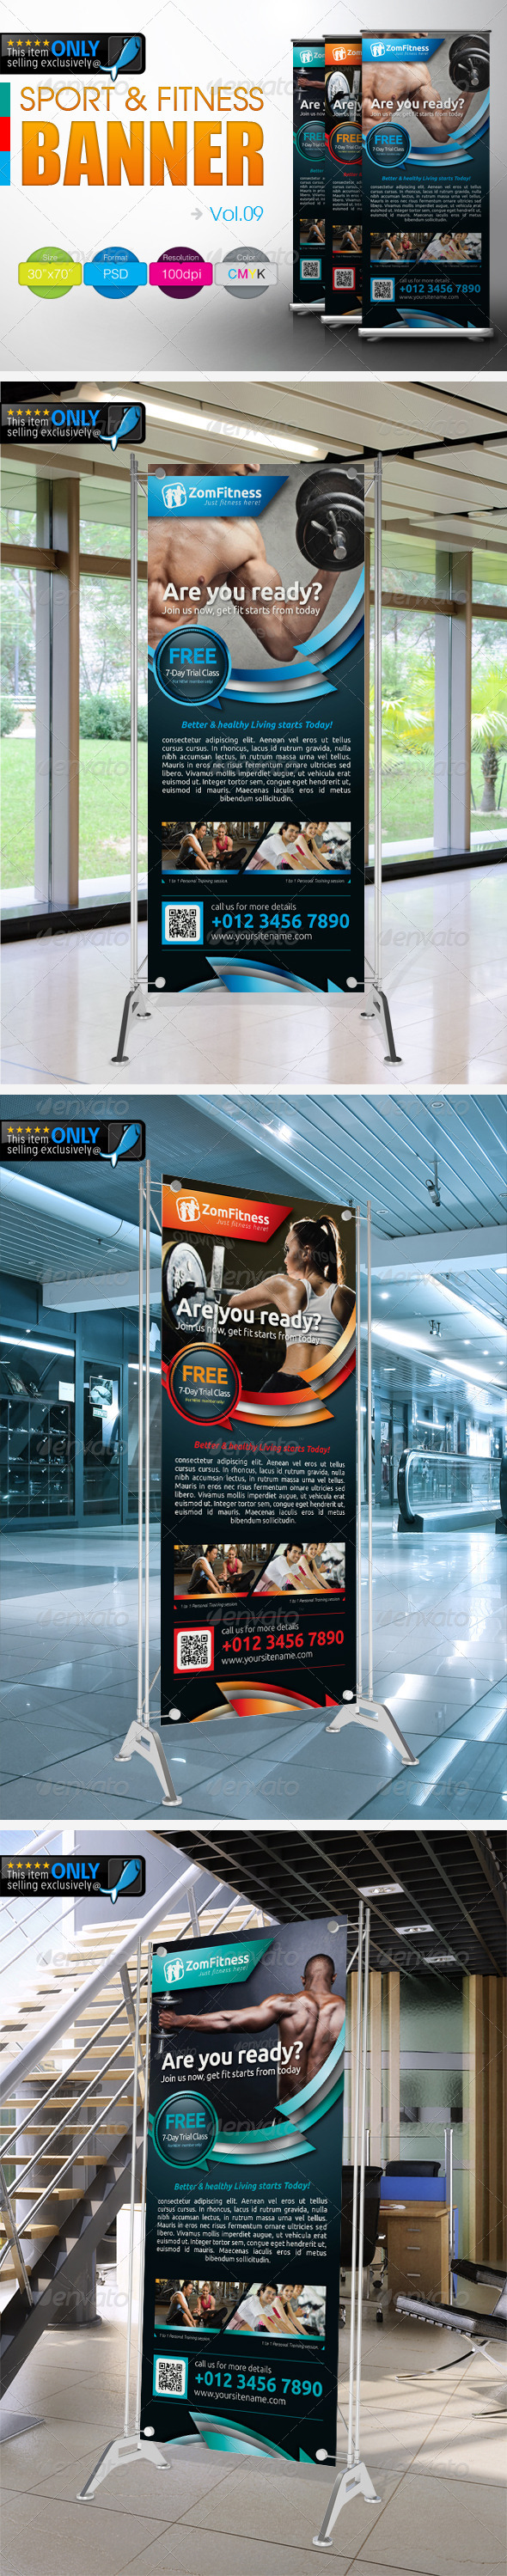 Fitness Banner Vol.9 - Signage Print Templates